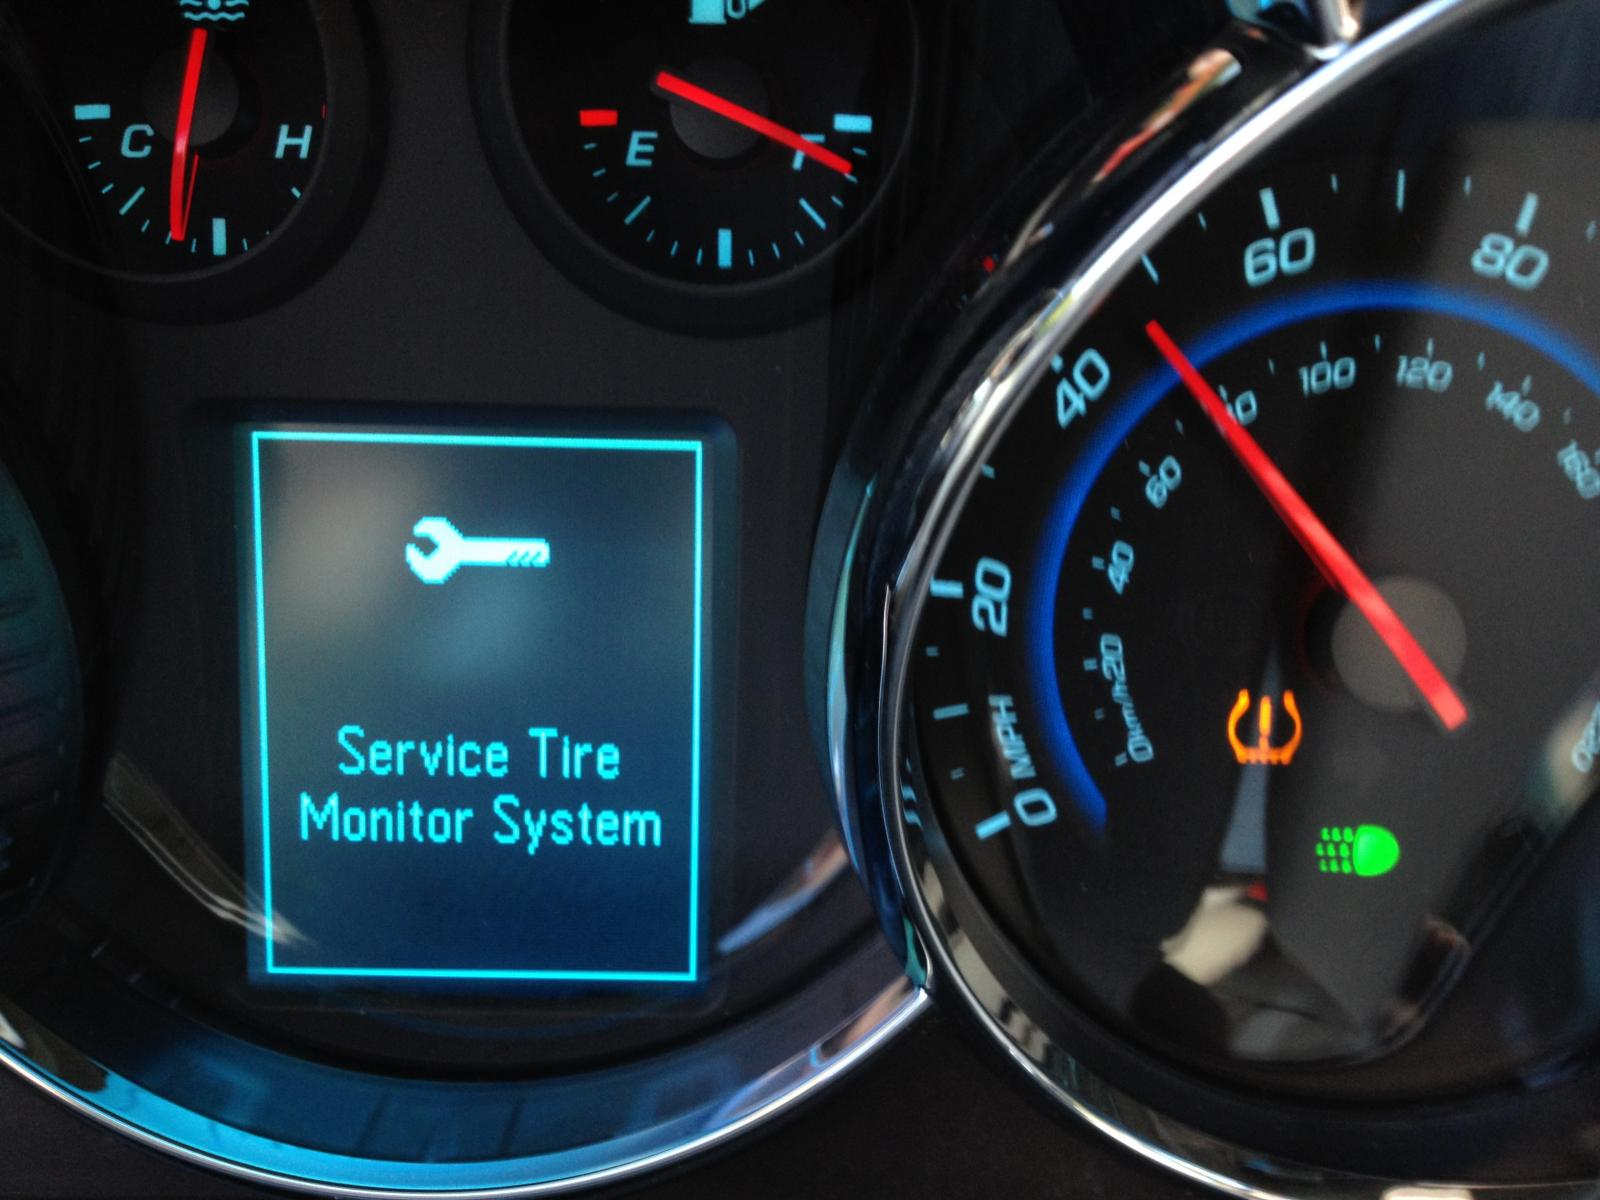 Chevy Cruze Tire Pressure >> Service Tire Monitor System Warning Chevrolet Cruze Forums